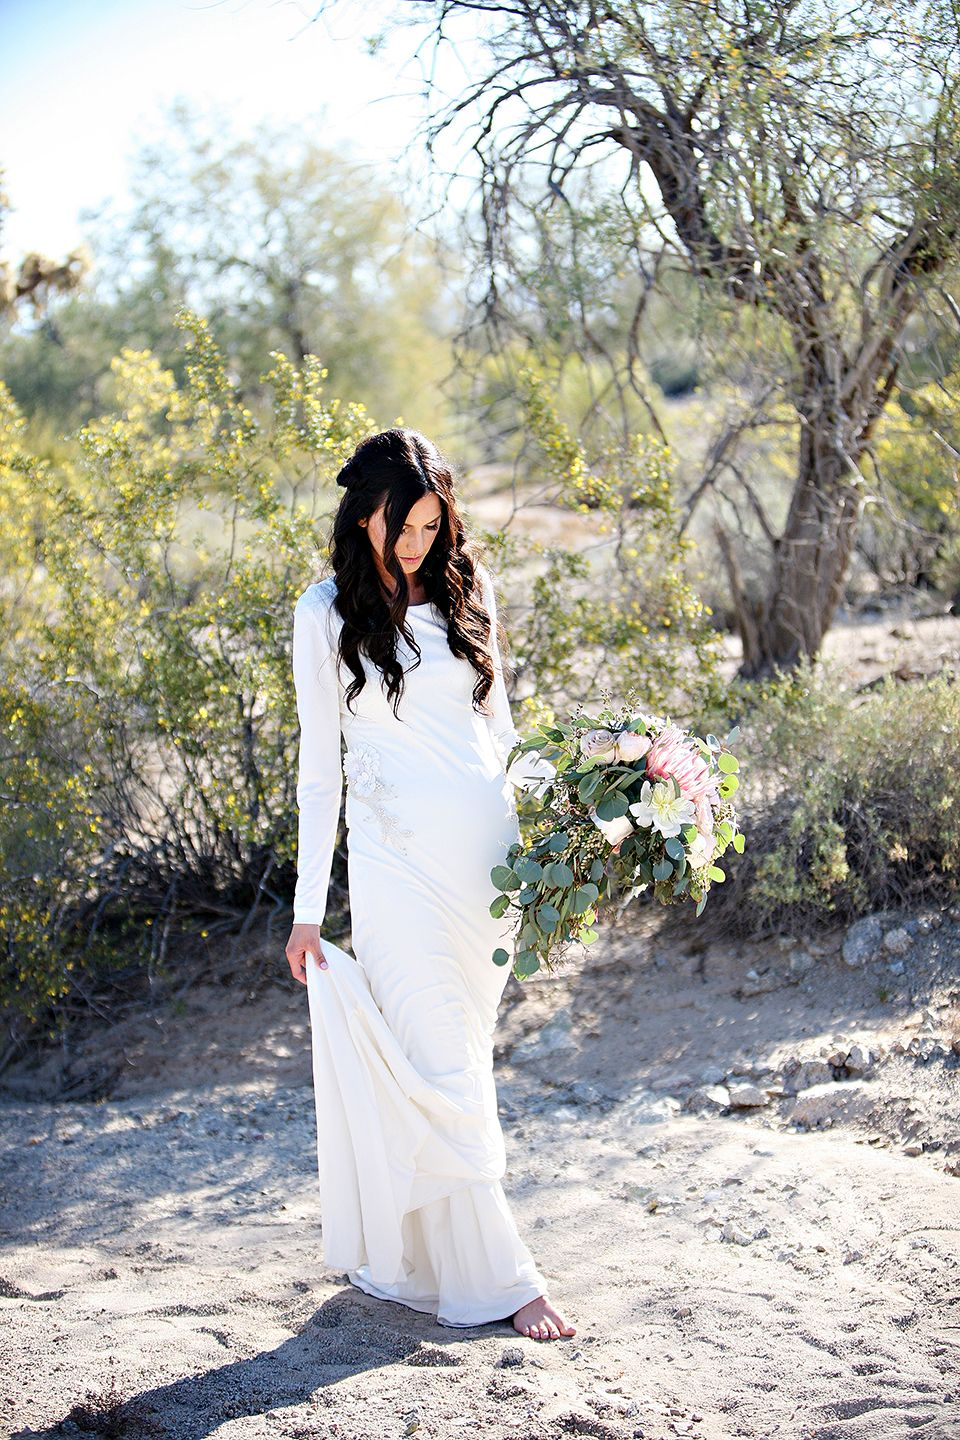 Coco Chandell » A Chea Lamb Project » The perfect white dress, modest wedding dress, desert bridal photoshoot, palmsprings inspiration, santan mountains